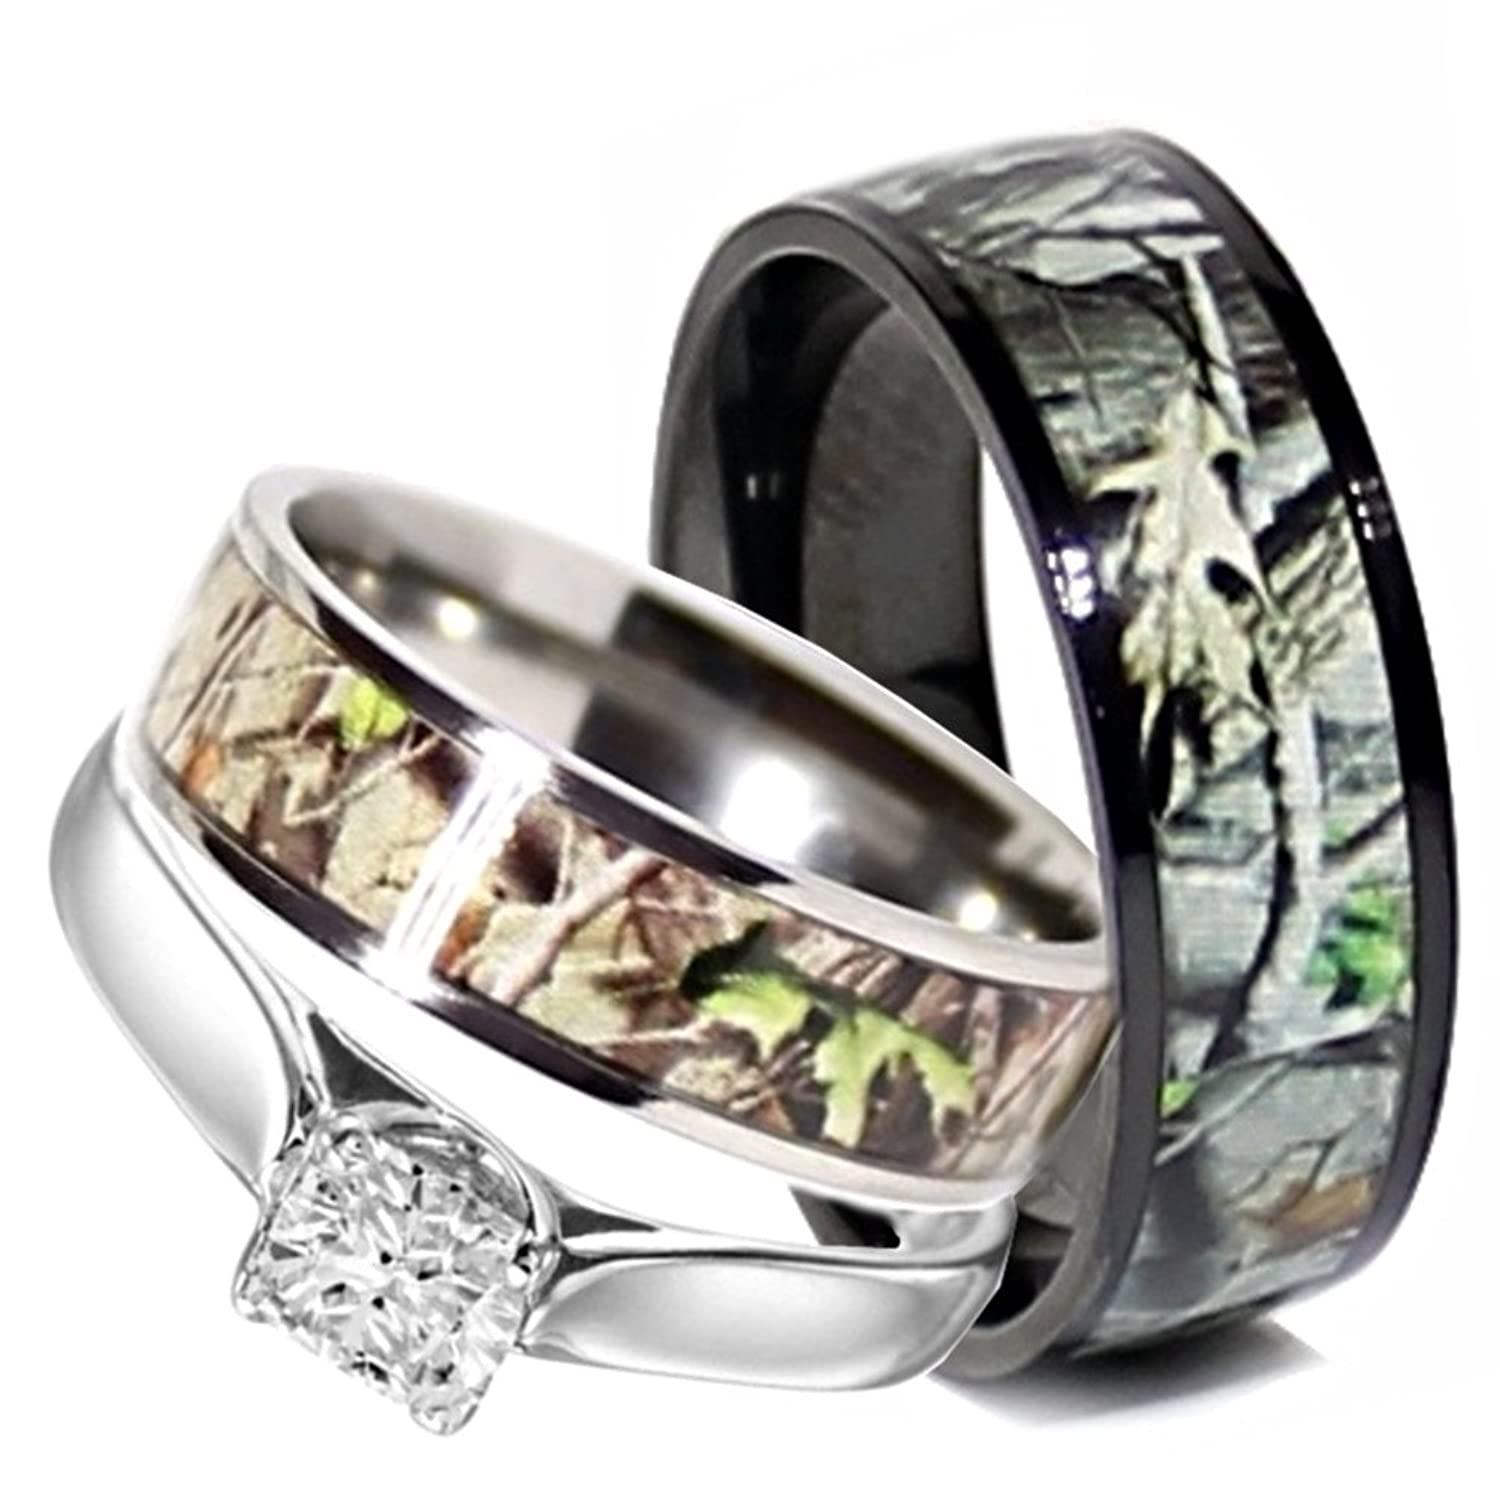 amazoncom camo wedding rings set his and hers 3 rings set sterling silver and titanium size men 10 women 10 jewelry - Camo Wedding Rings Sets